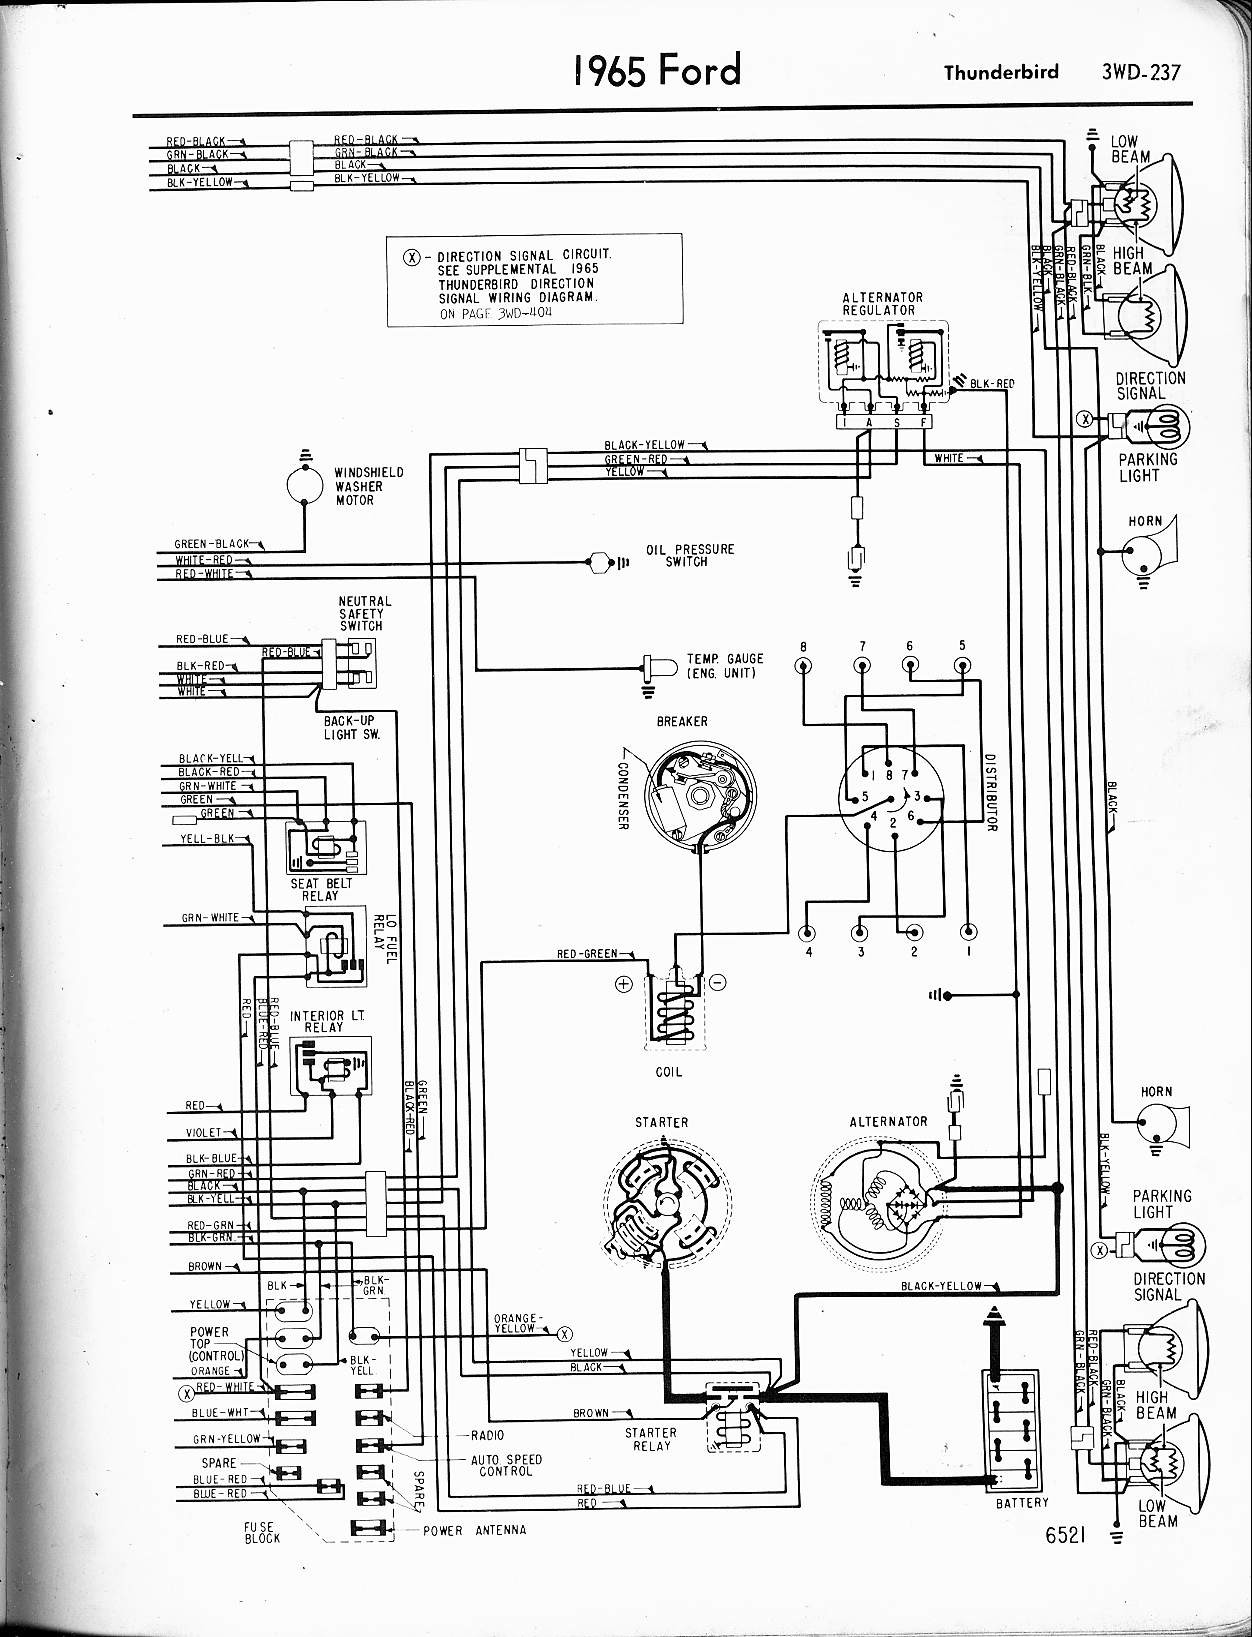 Isuzu Rodeo Engine Diagram Volvo Wiring Diagrams My Tail Light F100 Lights Of